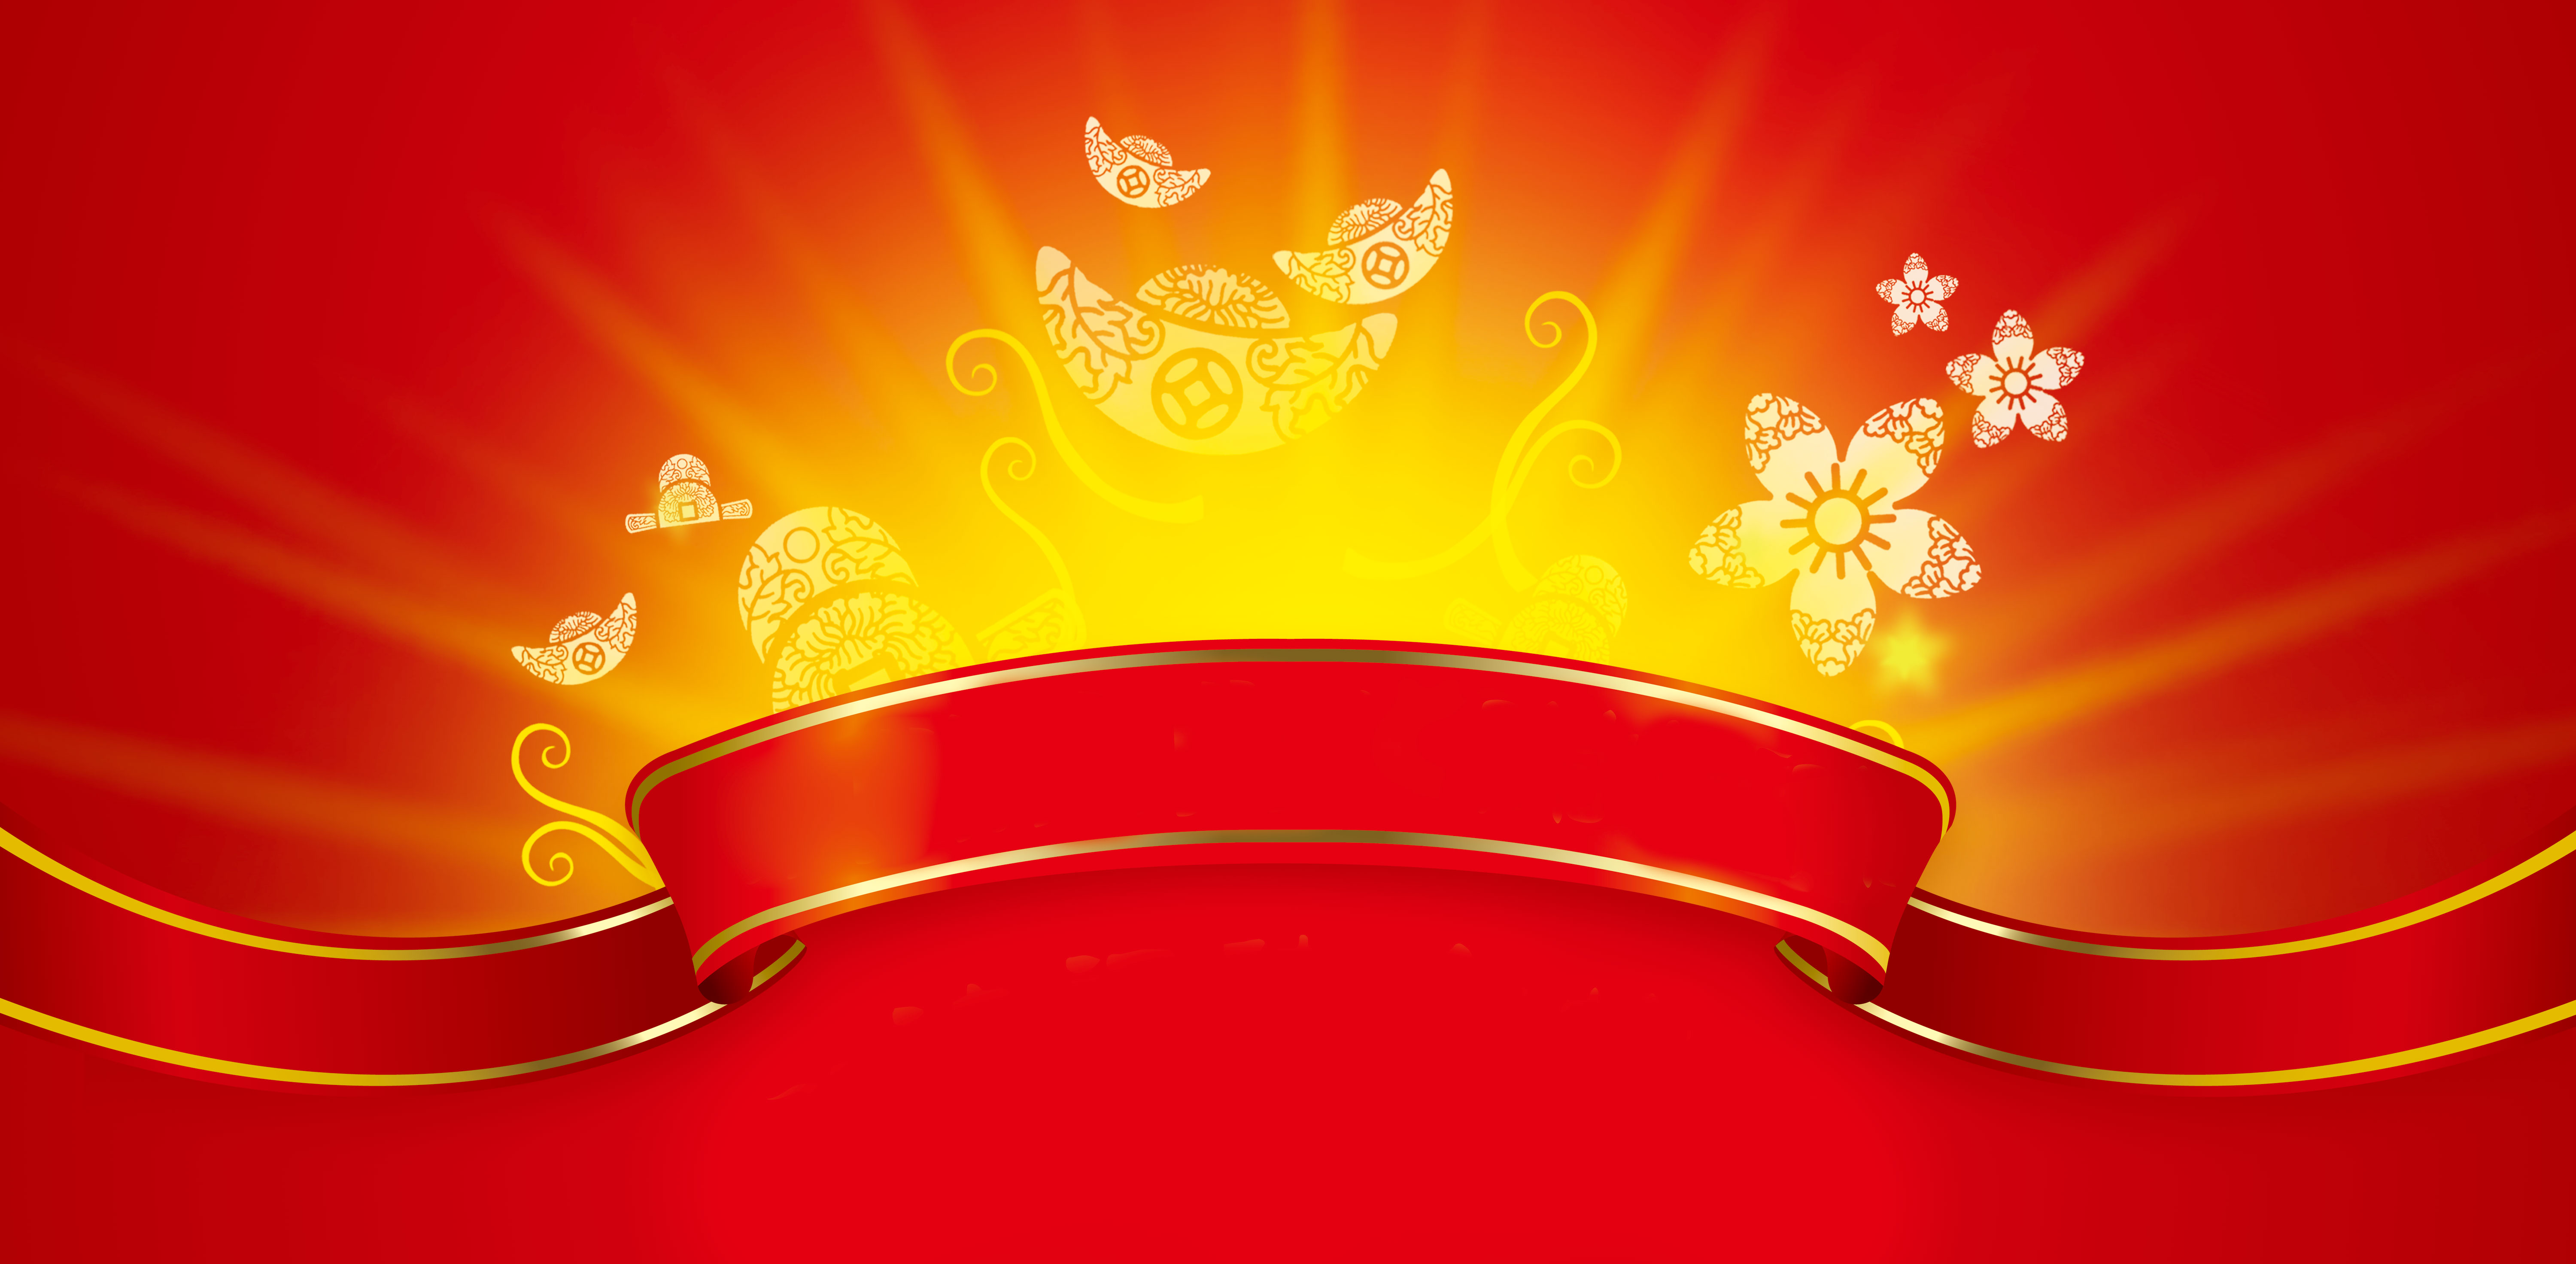 Gold And Red Backgrounds: Beautiful Red Gold Background, Golden, Red, Silk